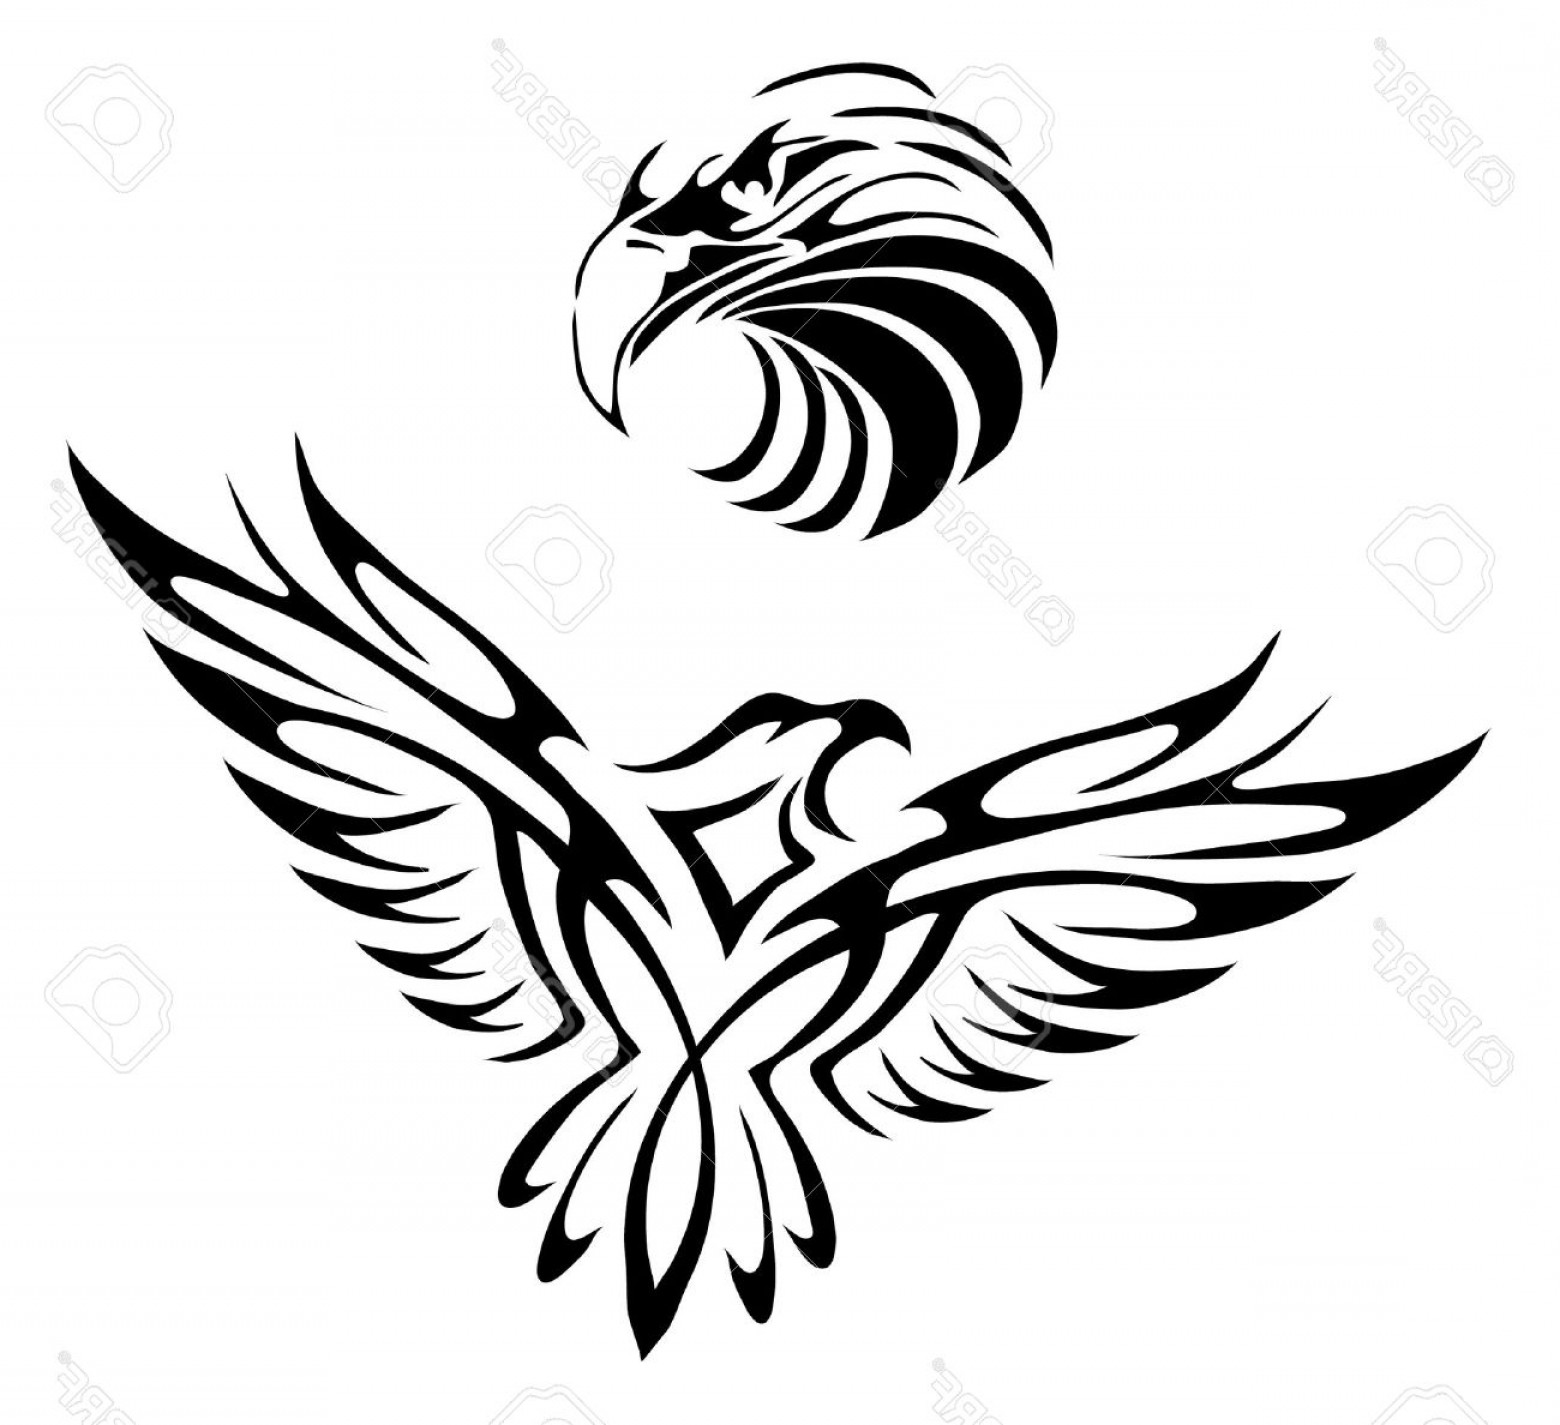 1560x1425 Black And White American Eagle Tattoo Shopatcloth